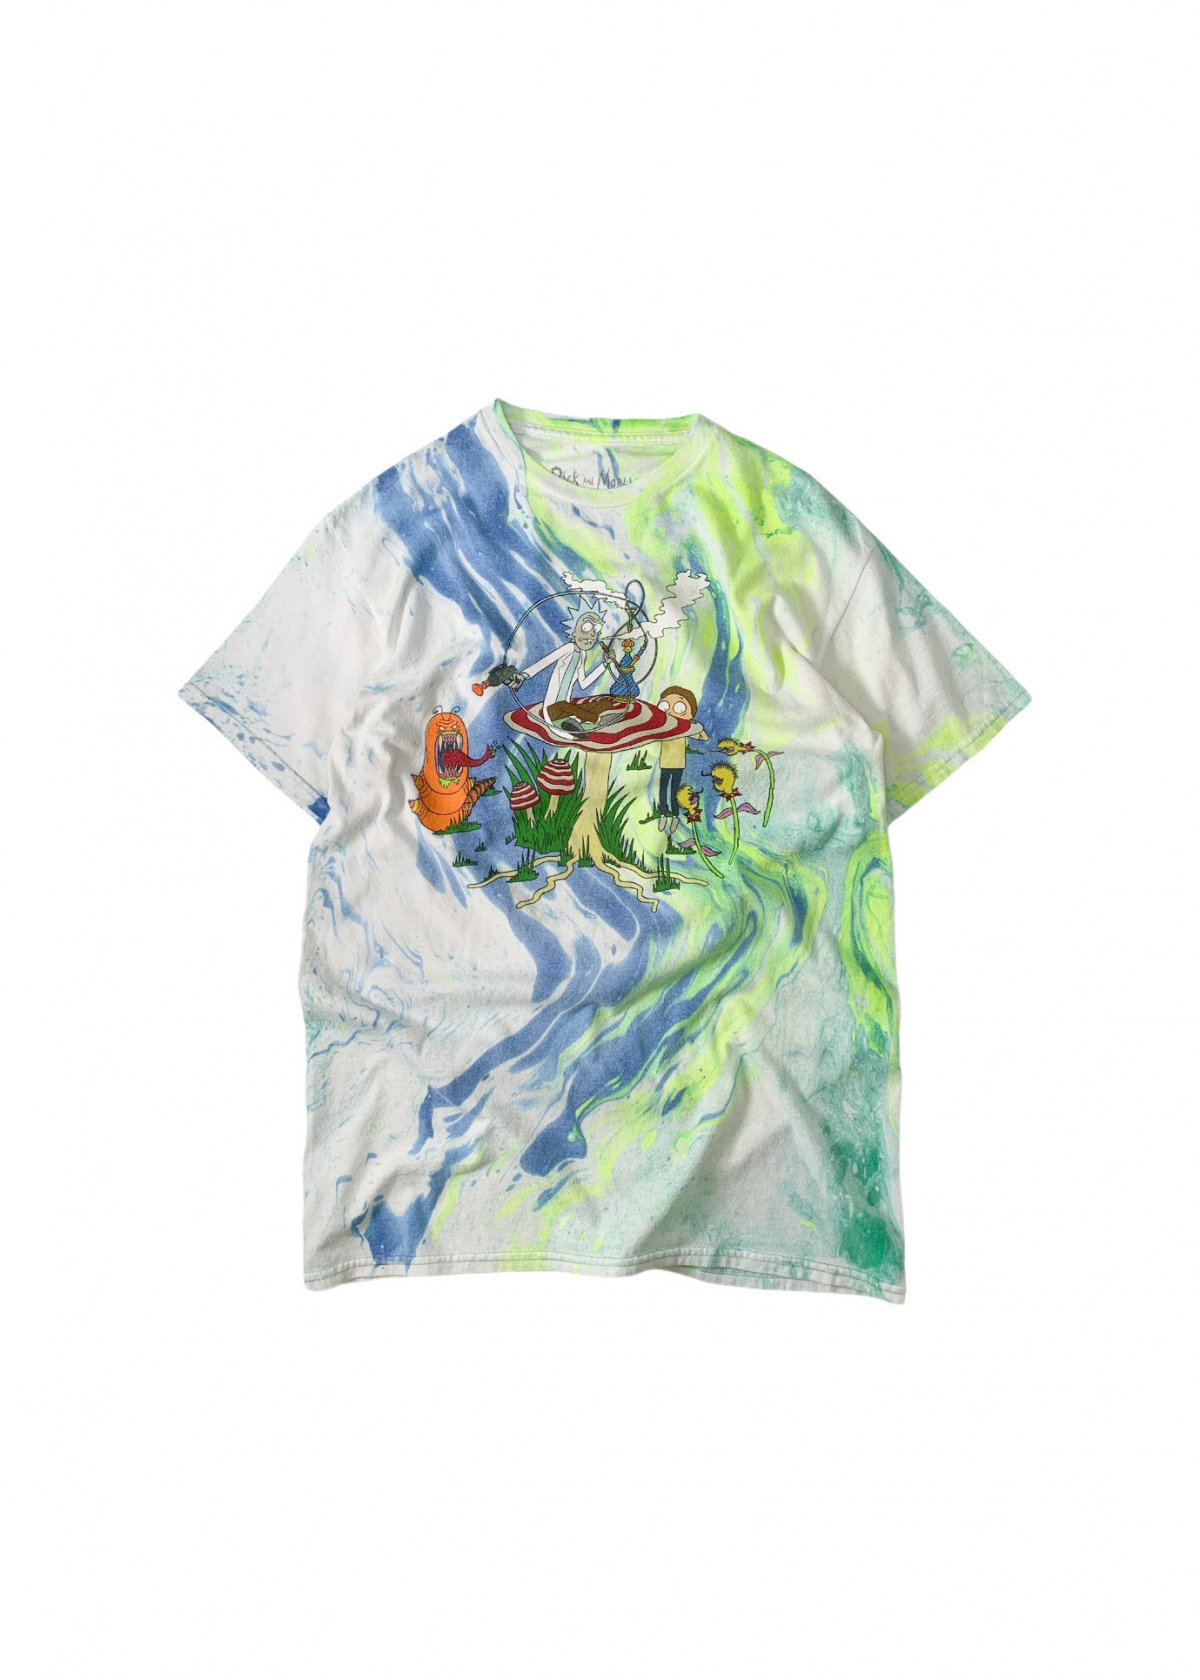 """""""Rick and Morty"""" Dyeing tee"""